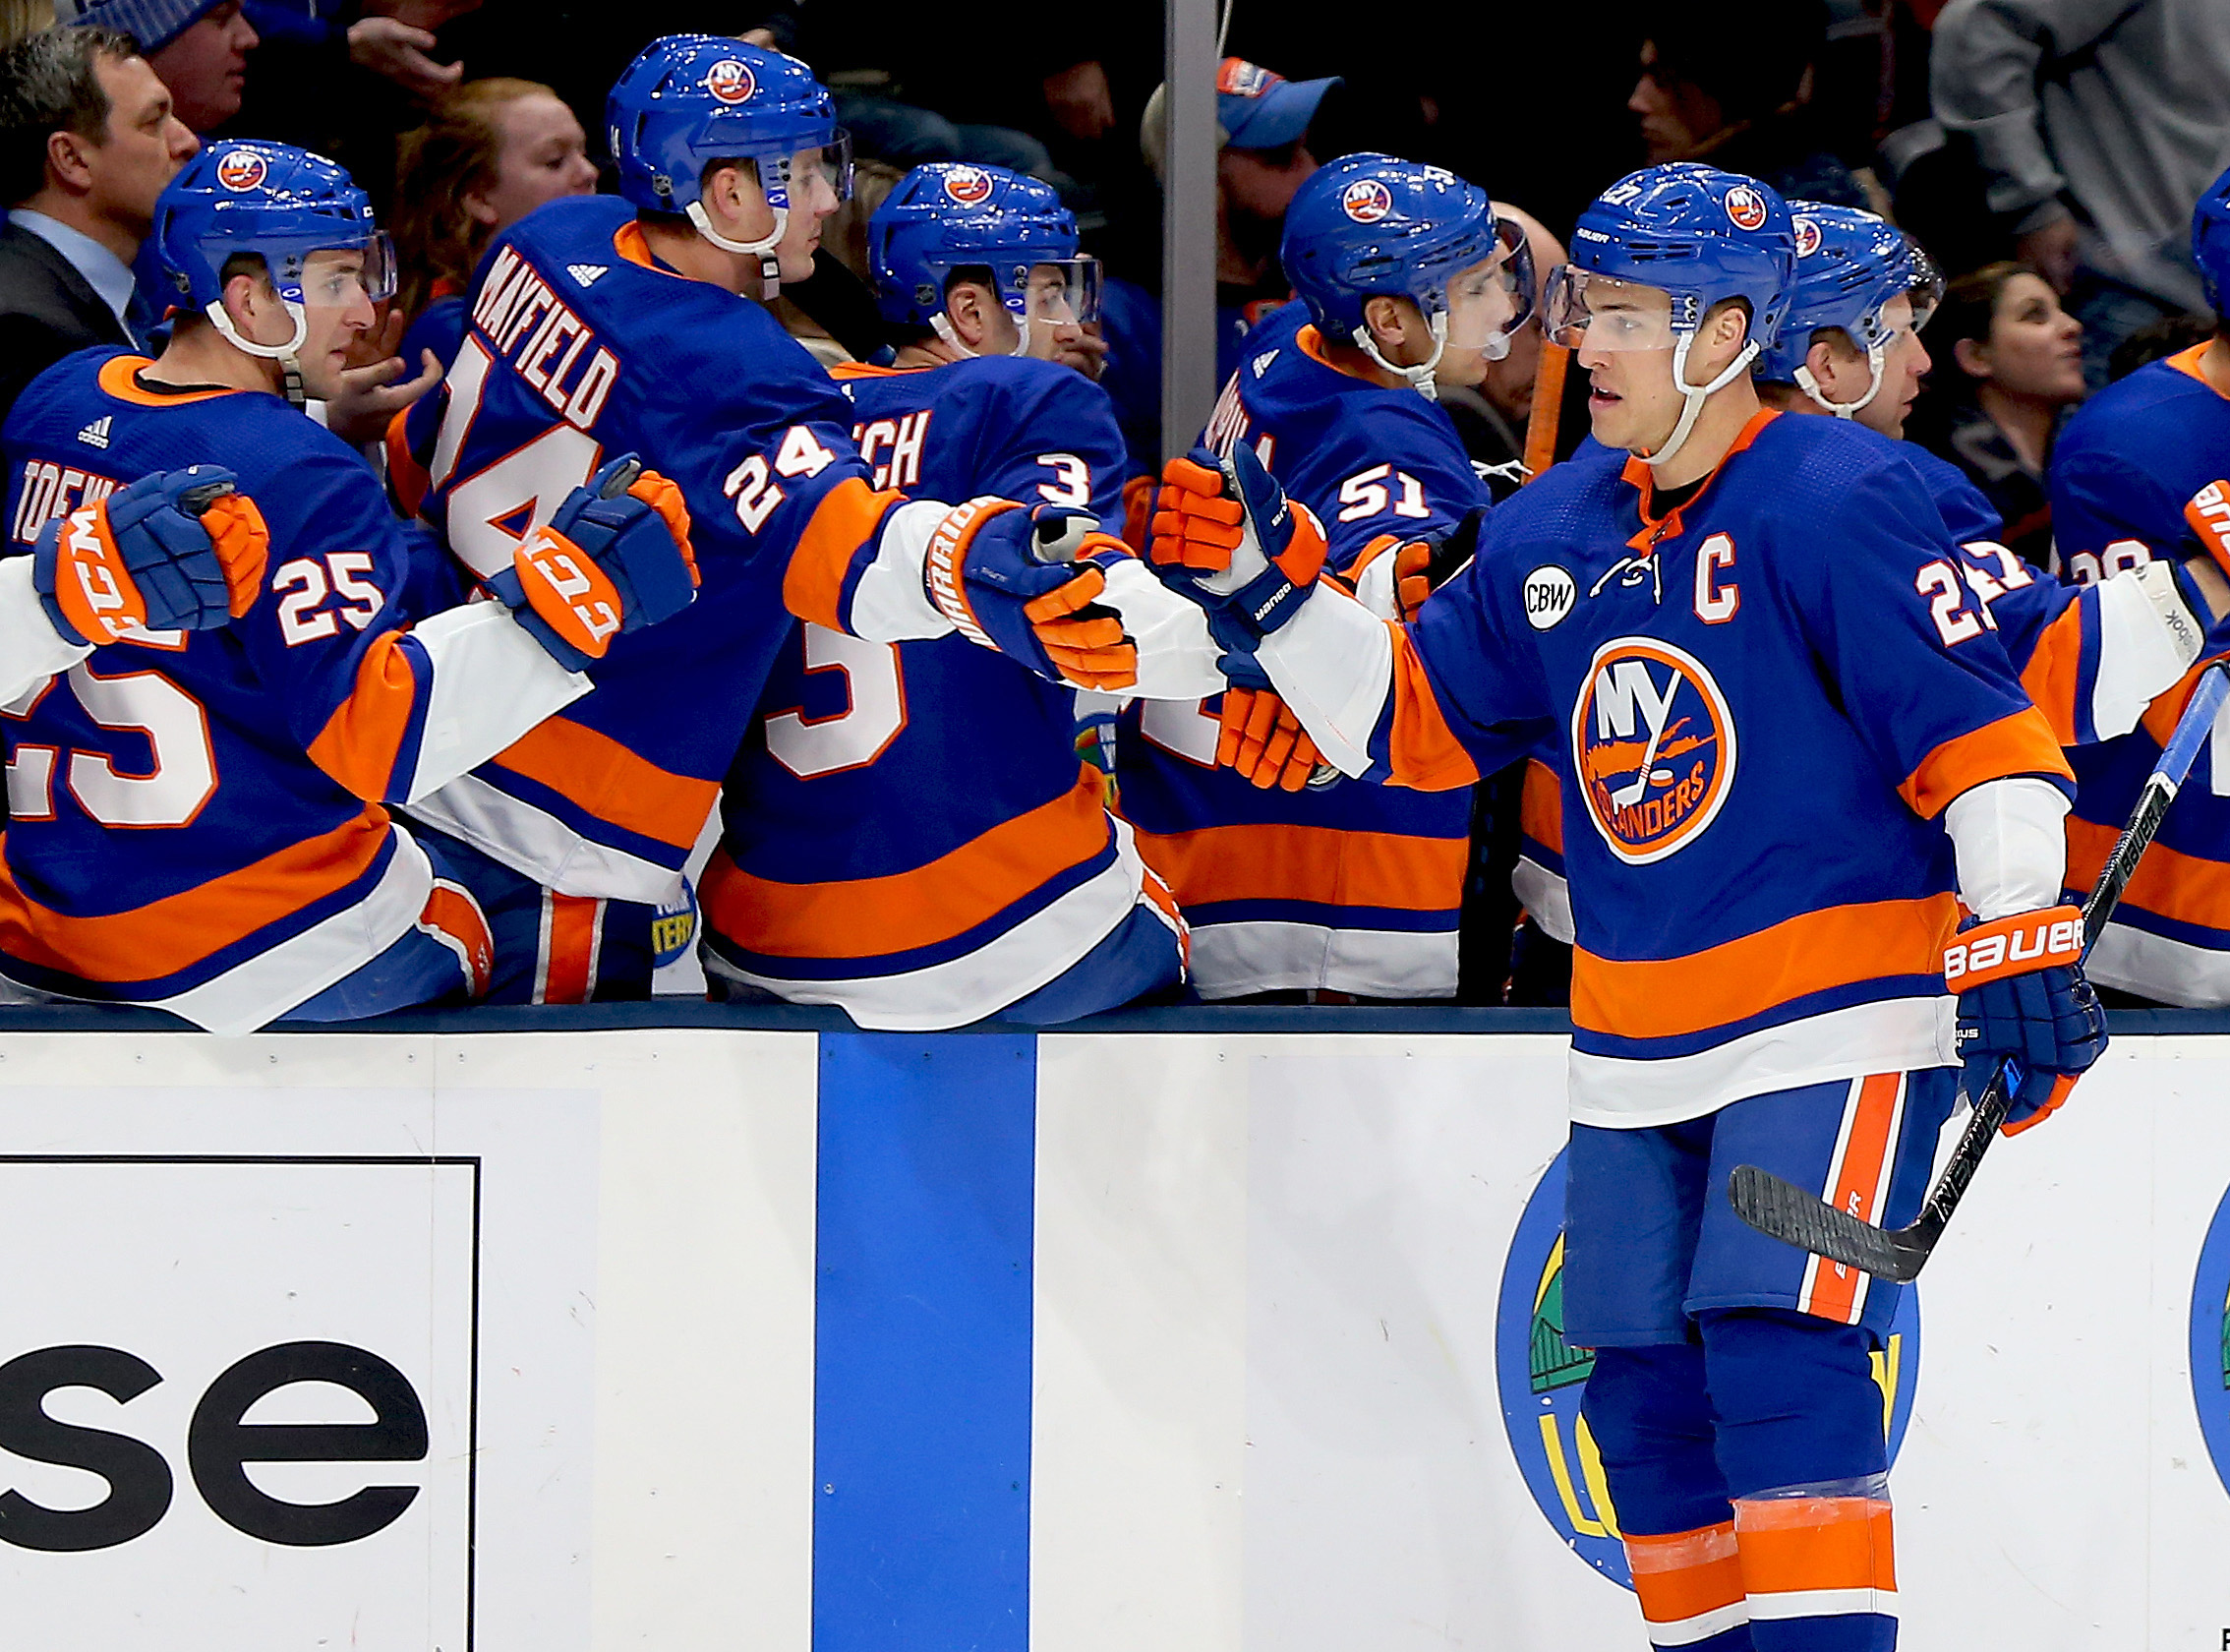 Islanders win third straight game with 4-1 victory over New Jersey